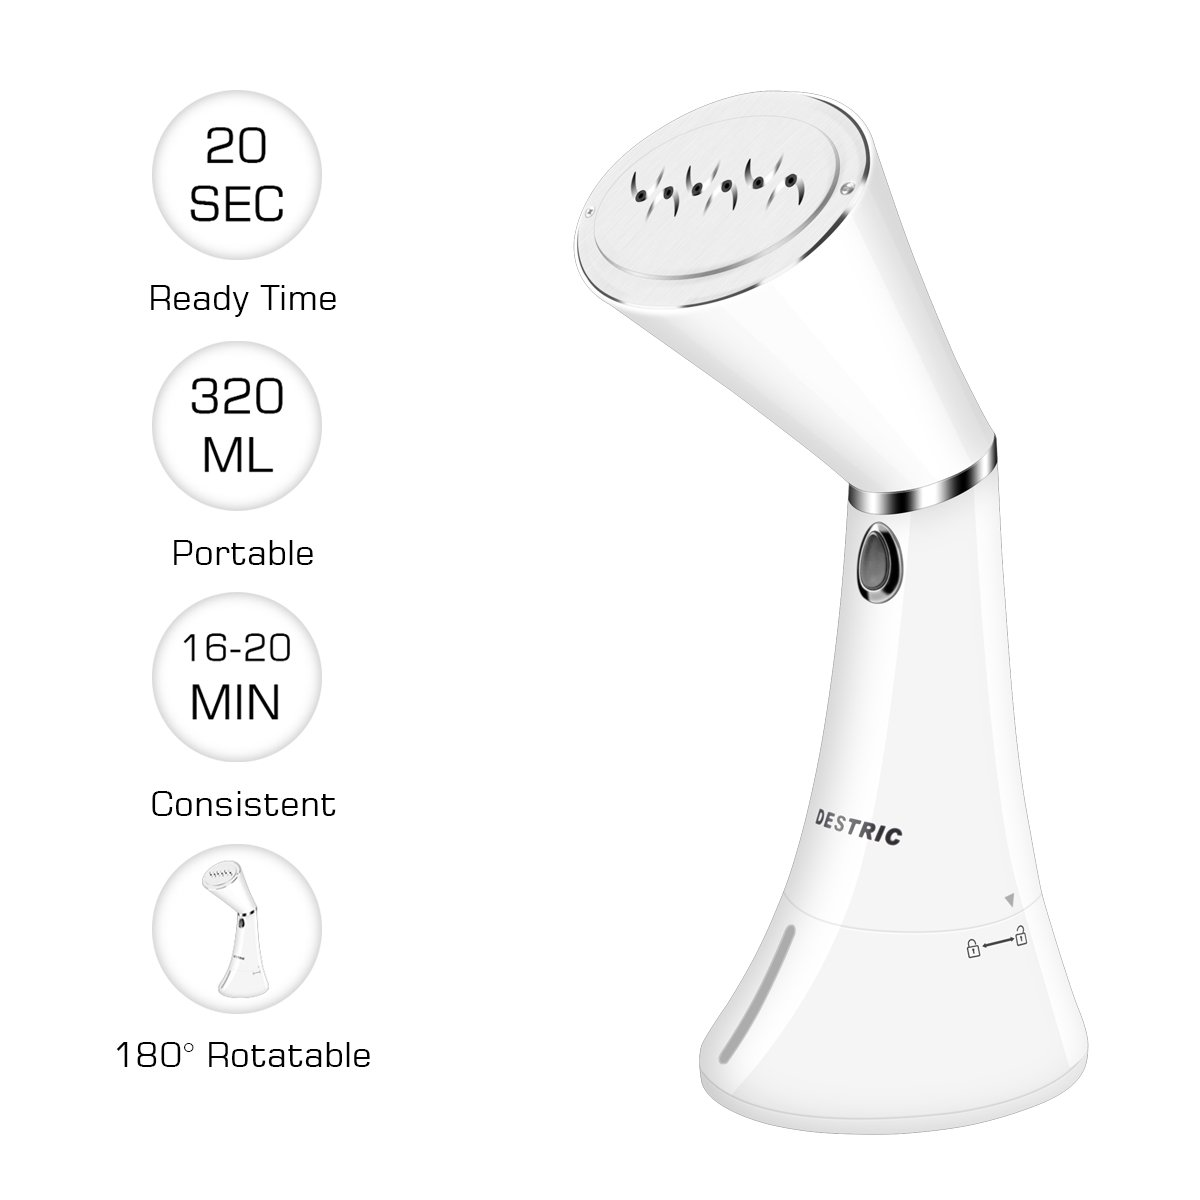 Clothes Steamer, DESTRIC Handheld Garment Steamer with 320ML Capacity 20s Fast Heat Portable Fabric Steamer 180 Degree Rotatable Anti-Drip Powerful Steamer Ideal for Home & Travel, 20min Continuous Steaming